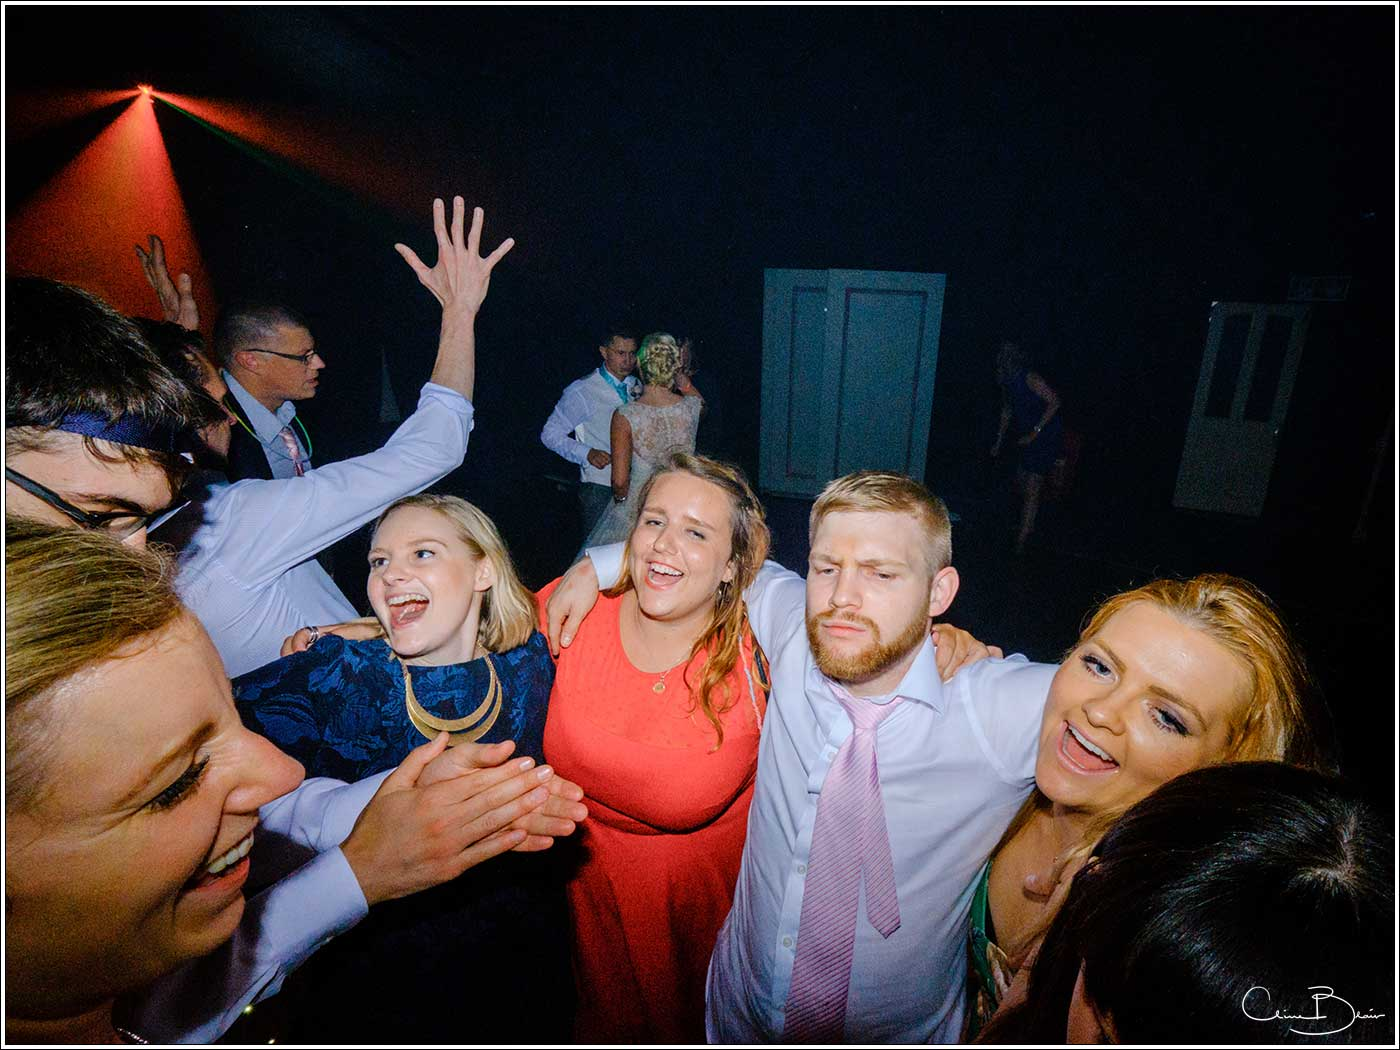 Coombe Abbey wedding photography showing happy guests on the dance floor